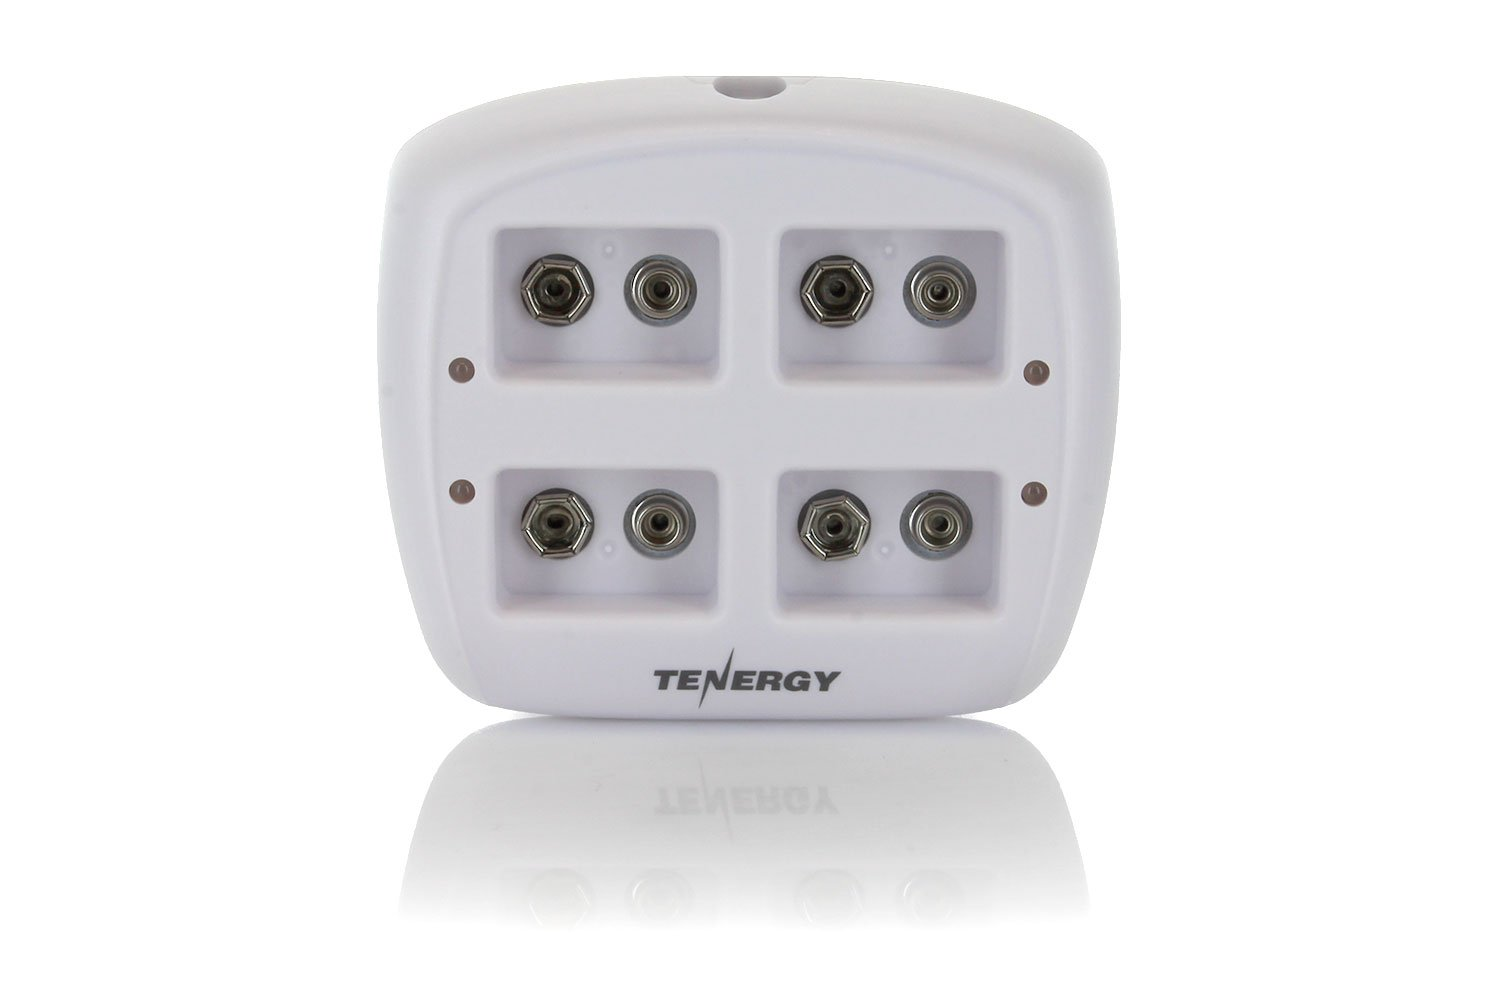 Tenergy Smart 9V 4 Bay Charger TN136 by Tenergy (Image #1)